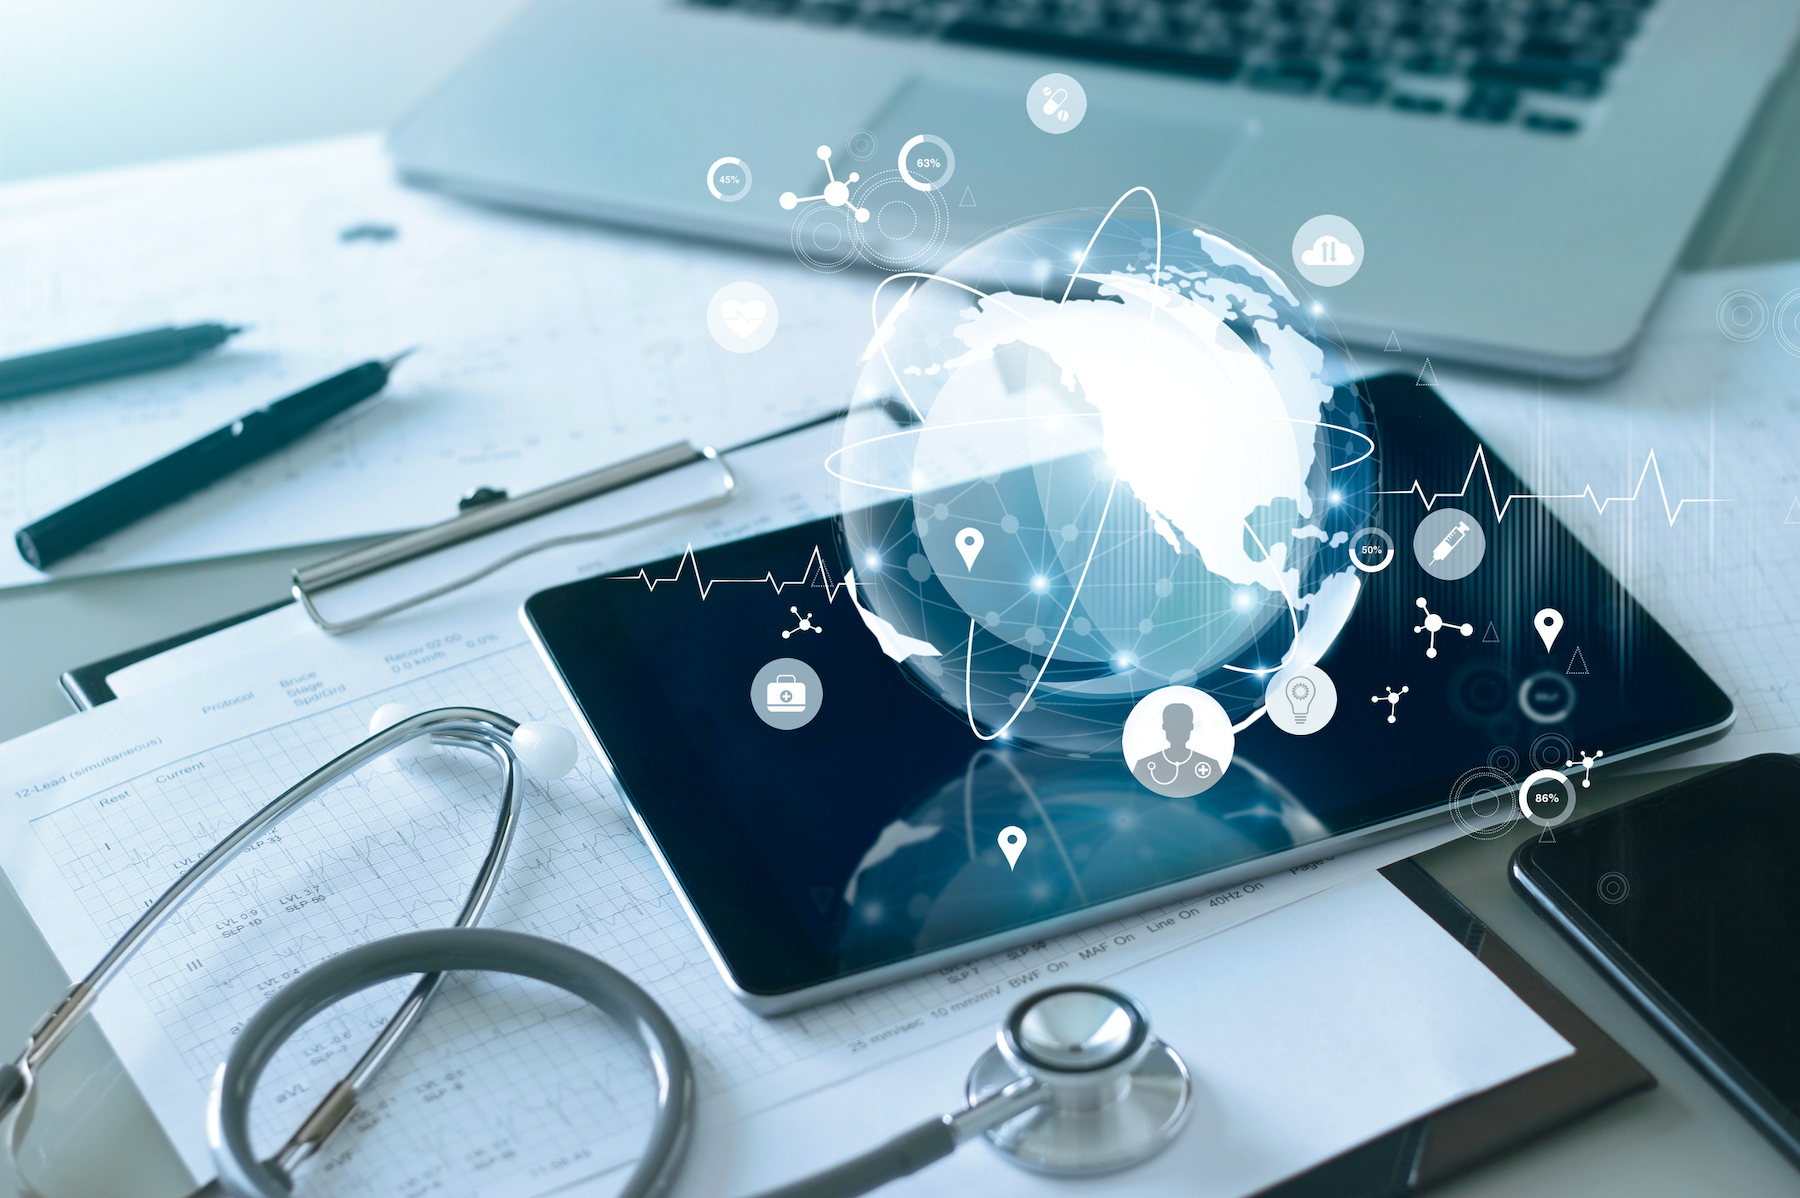 Finding Development Partners for Your Connected Medical Product